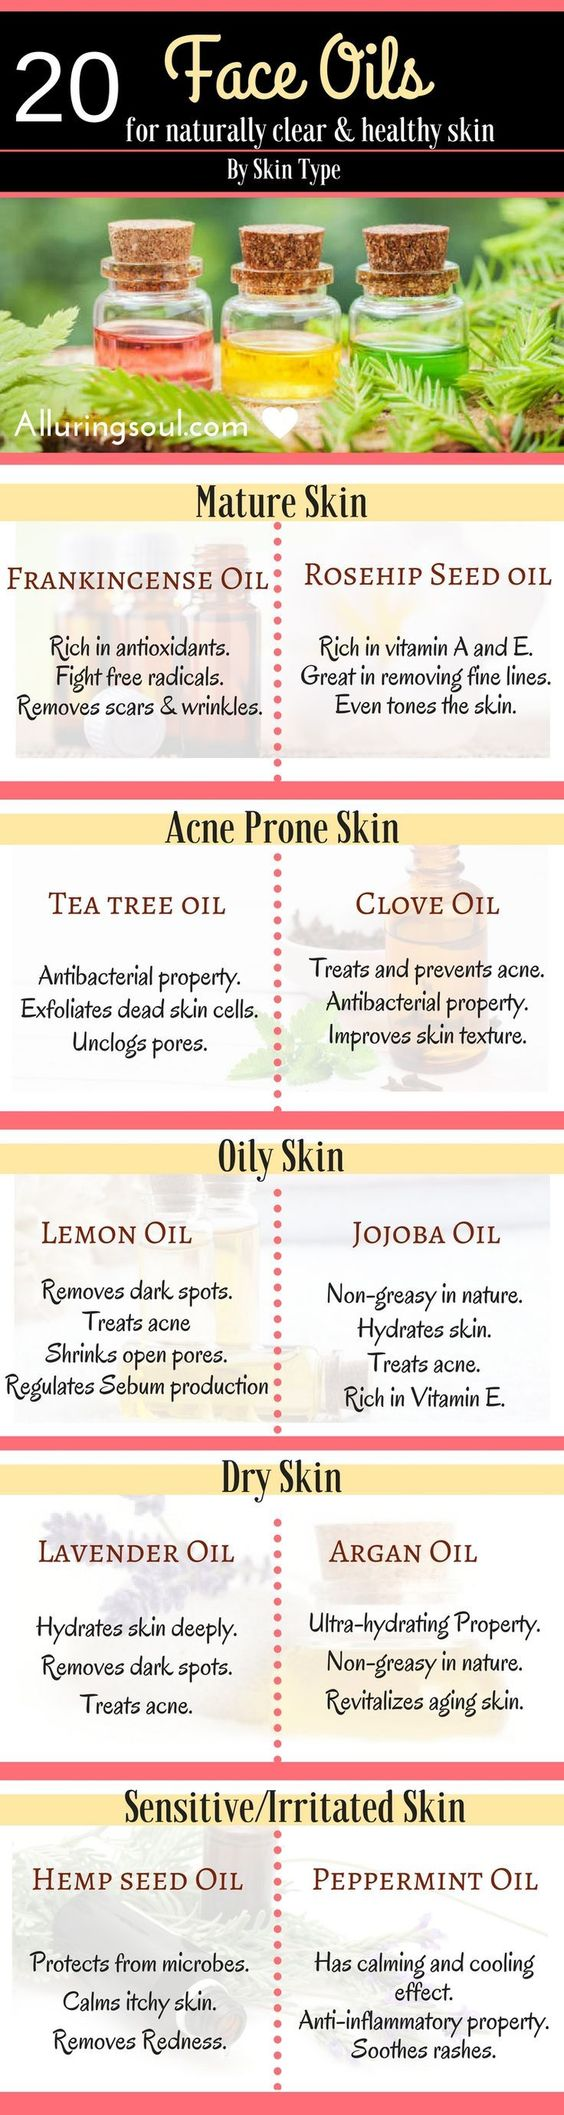 20 Face Oils for Naturally Clear And Hydrated Skin